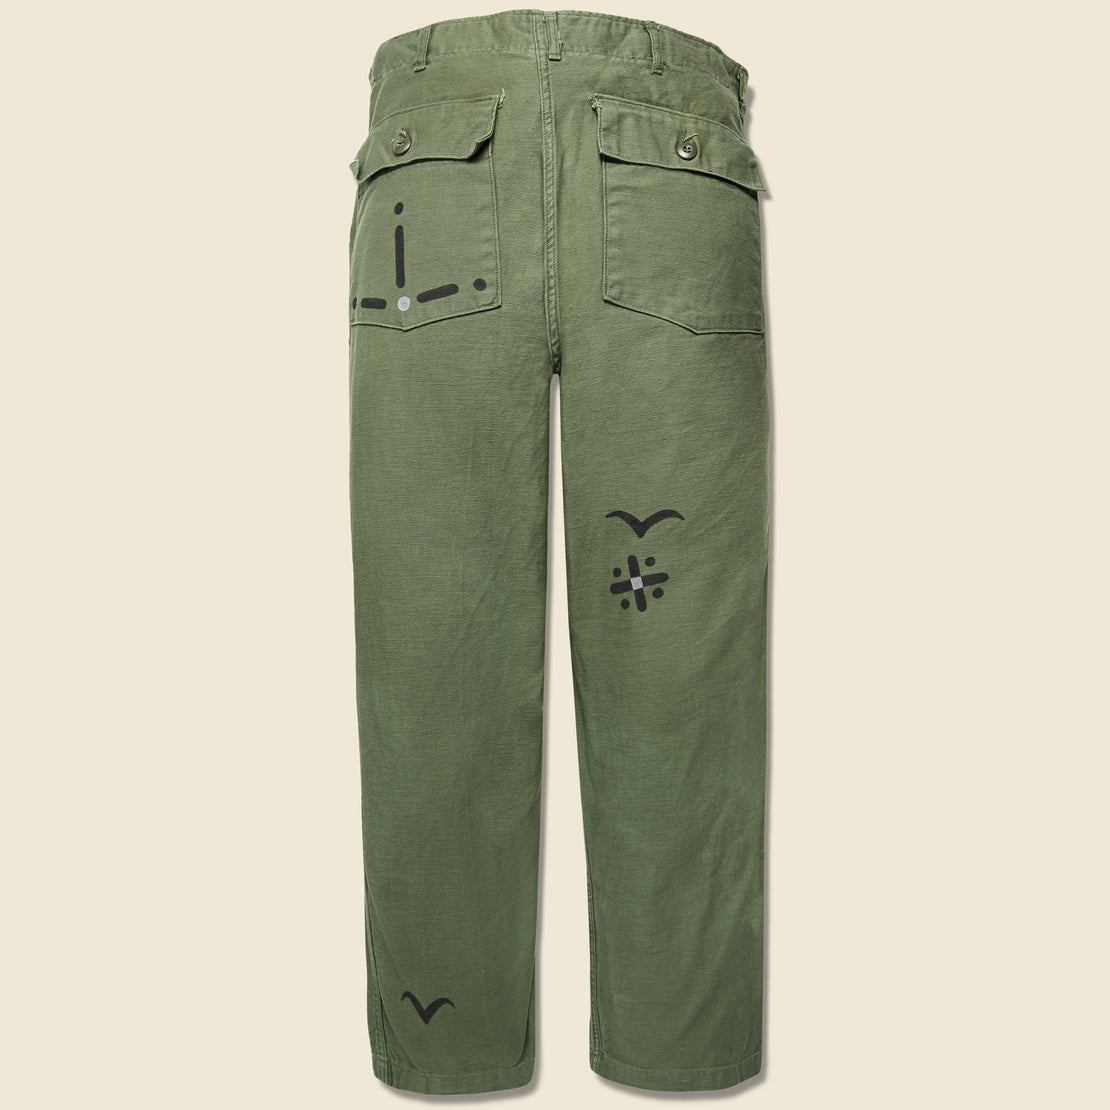 Vintage Military-Issued Sateen Fatigues - Birds